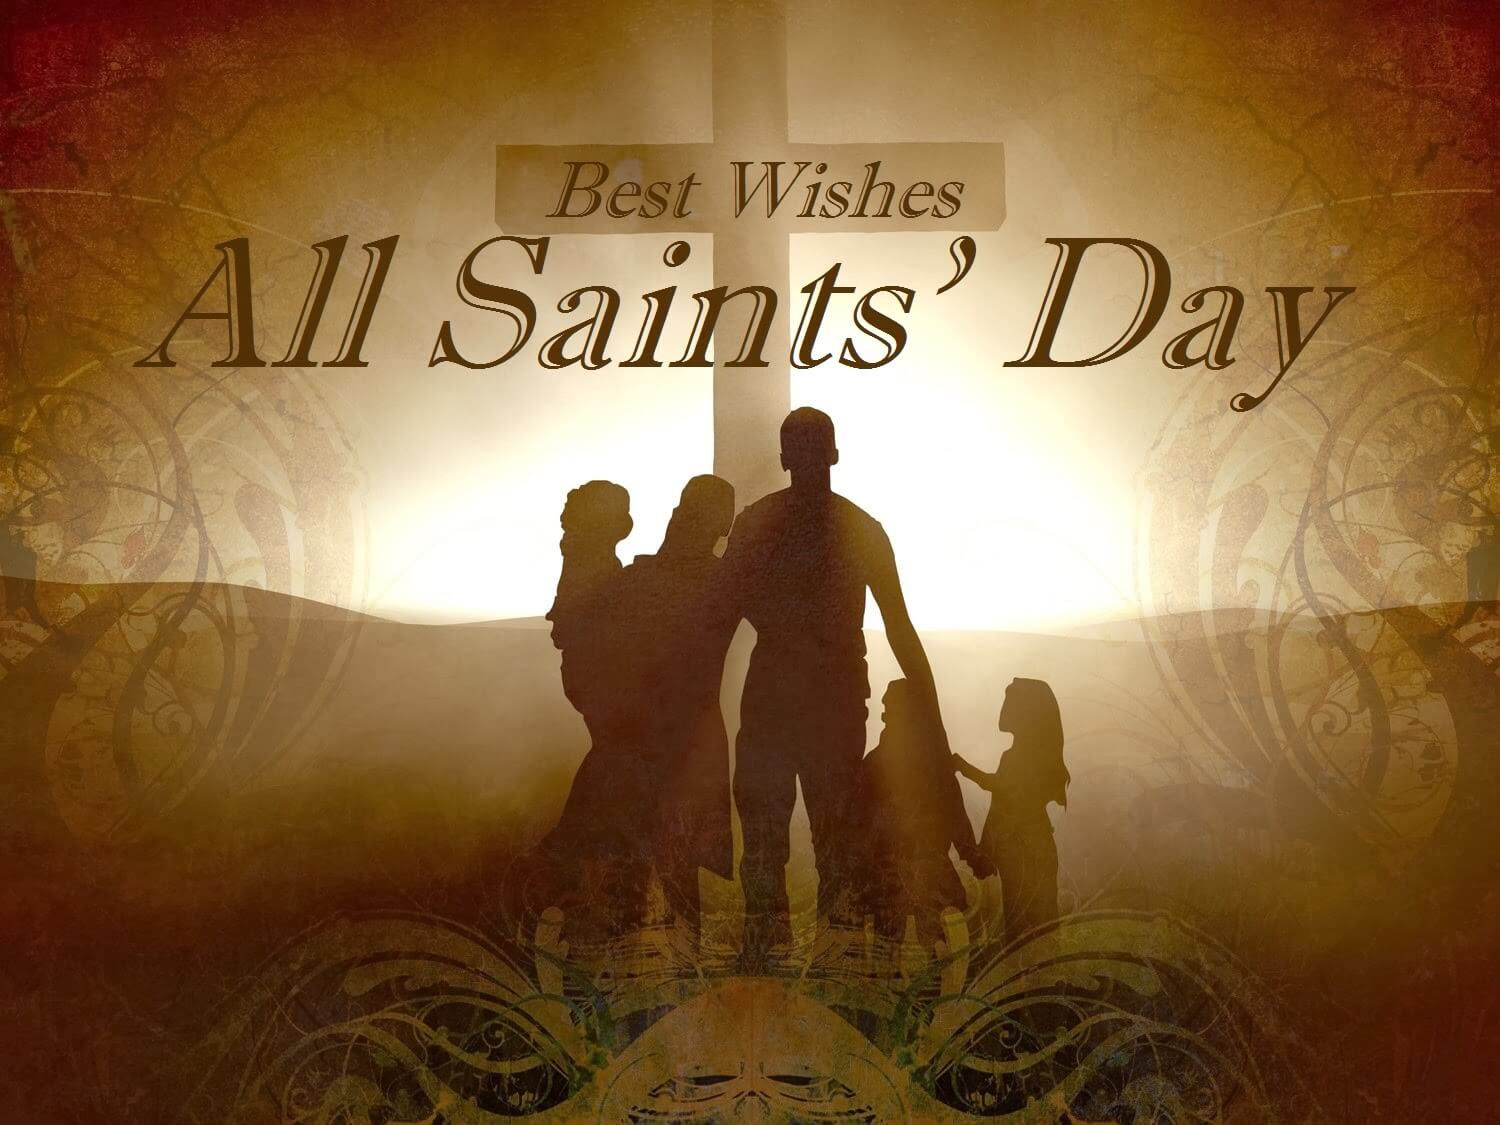 all saints day wishes hd picture image